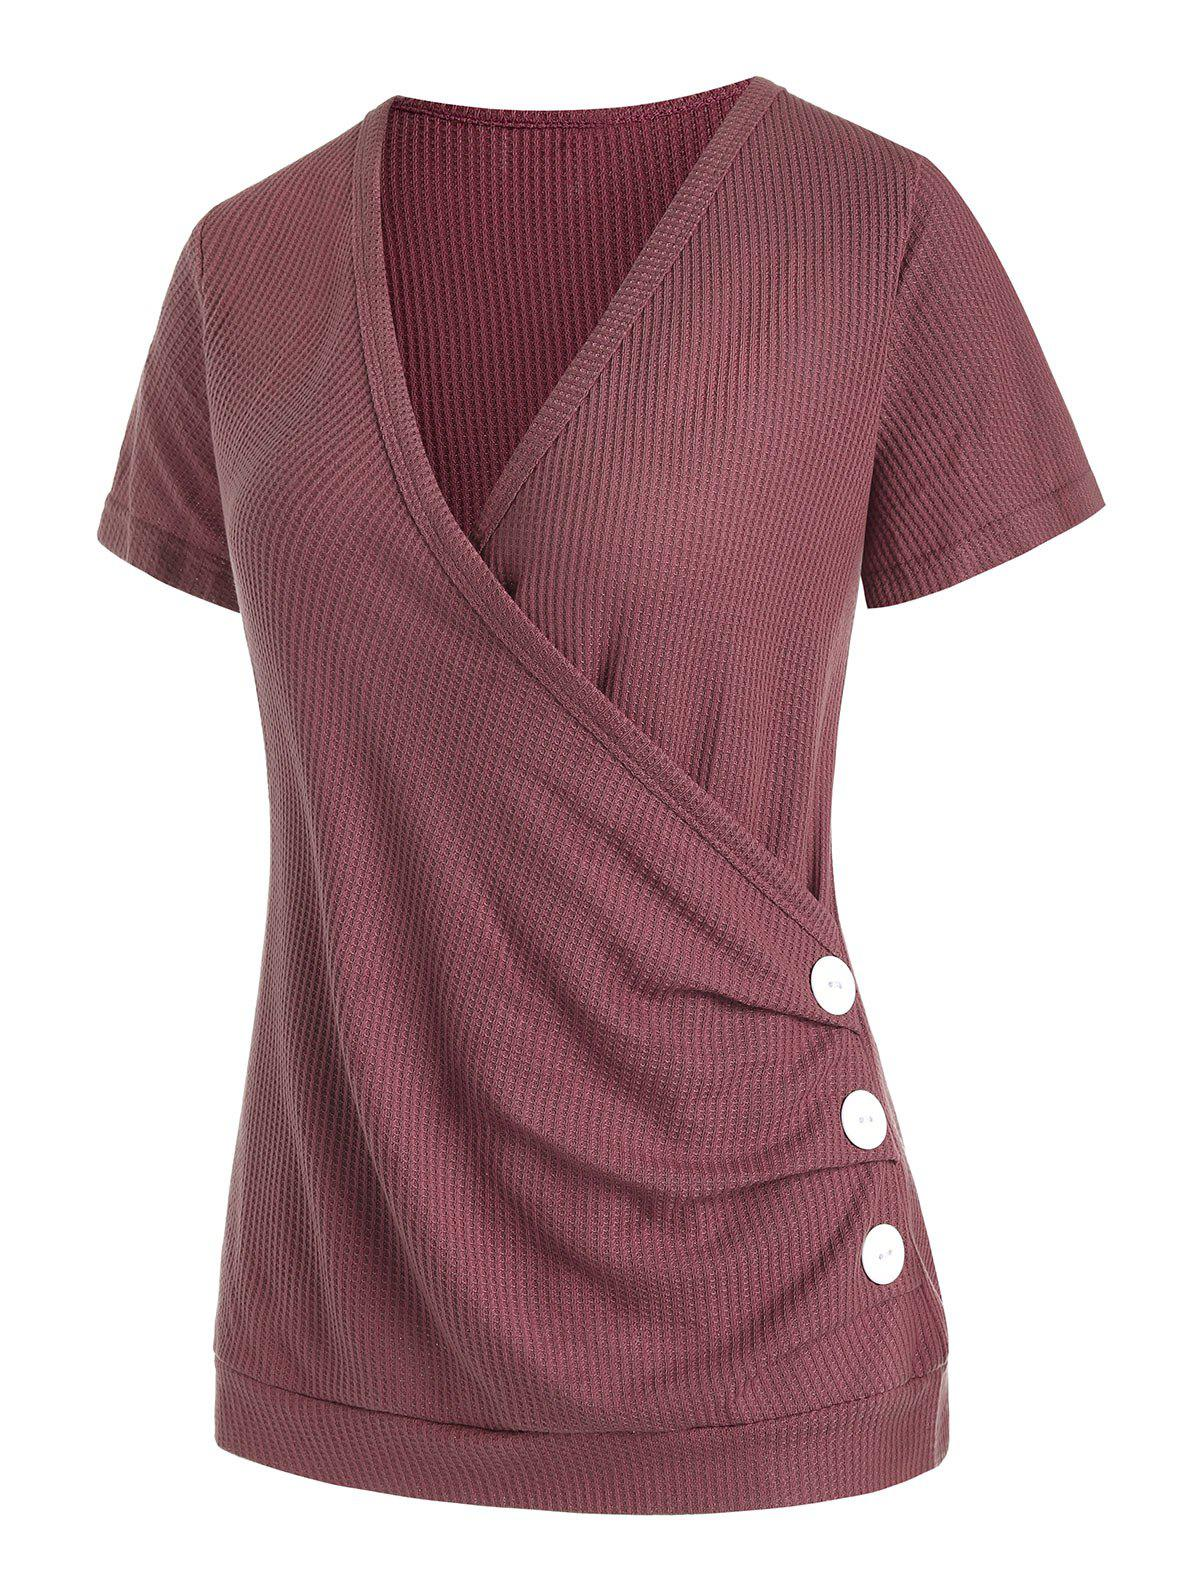 Plunge Surplice Textured Draped Buttoned Tee - DEEP RED XL